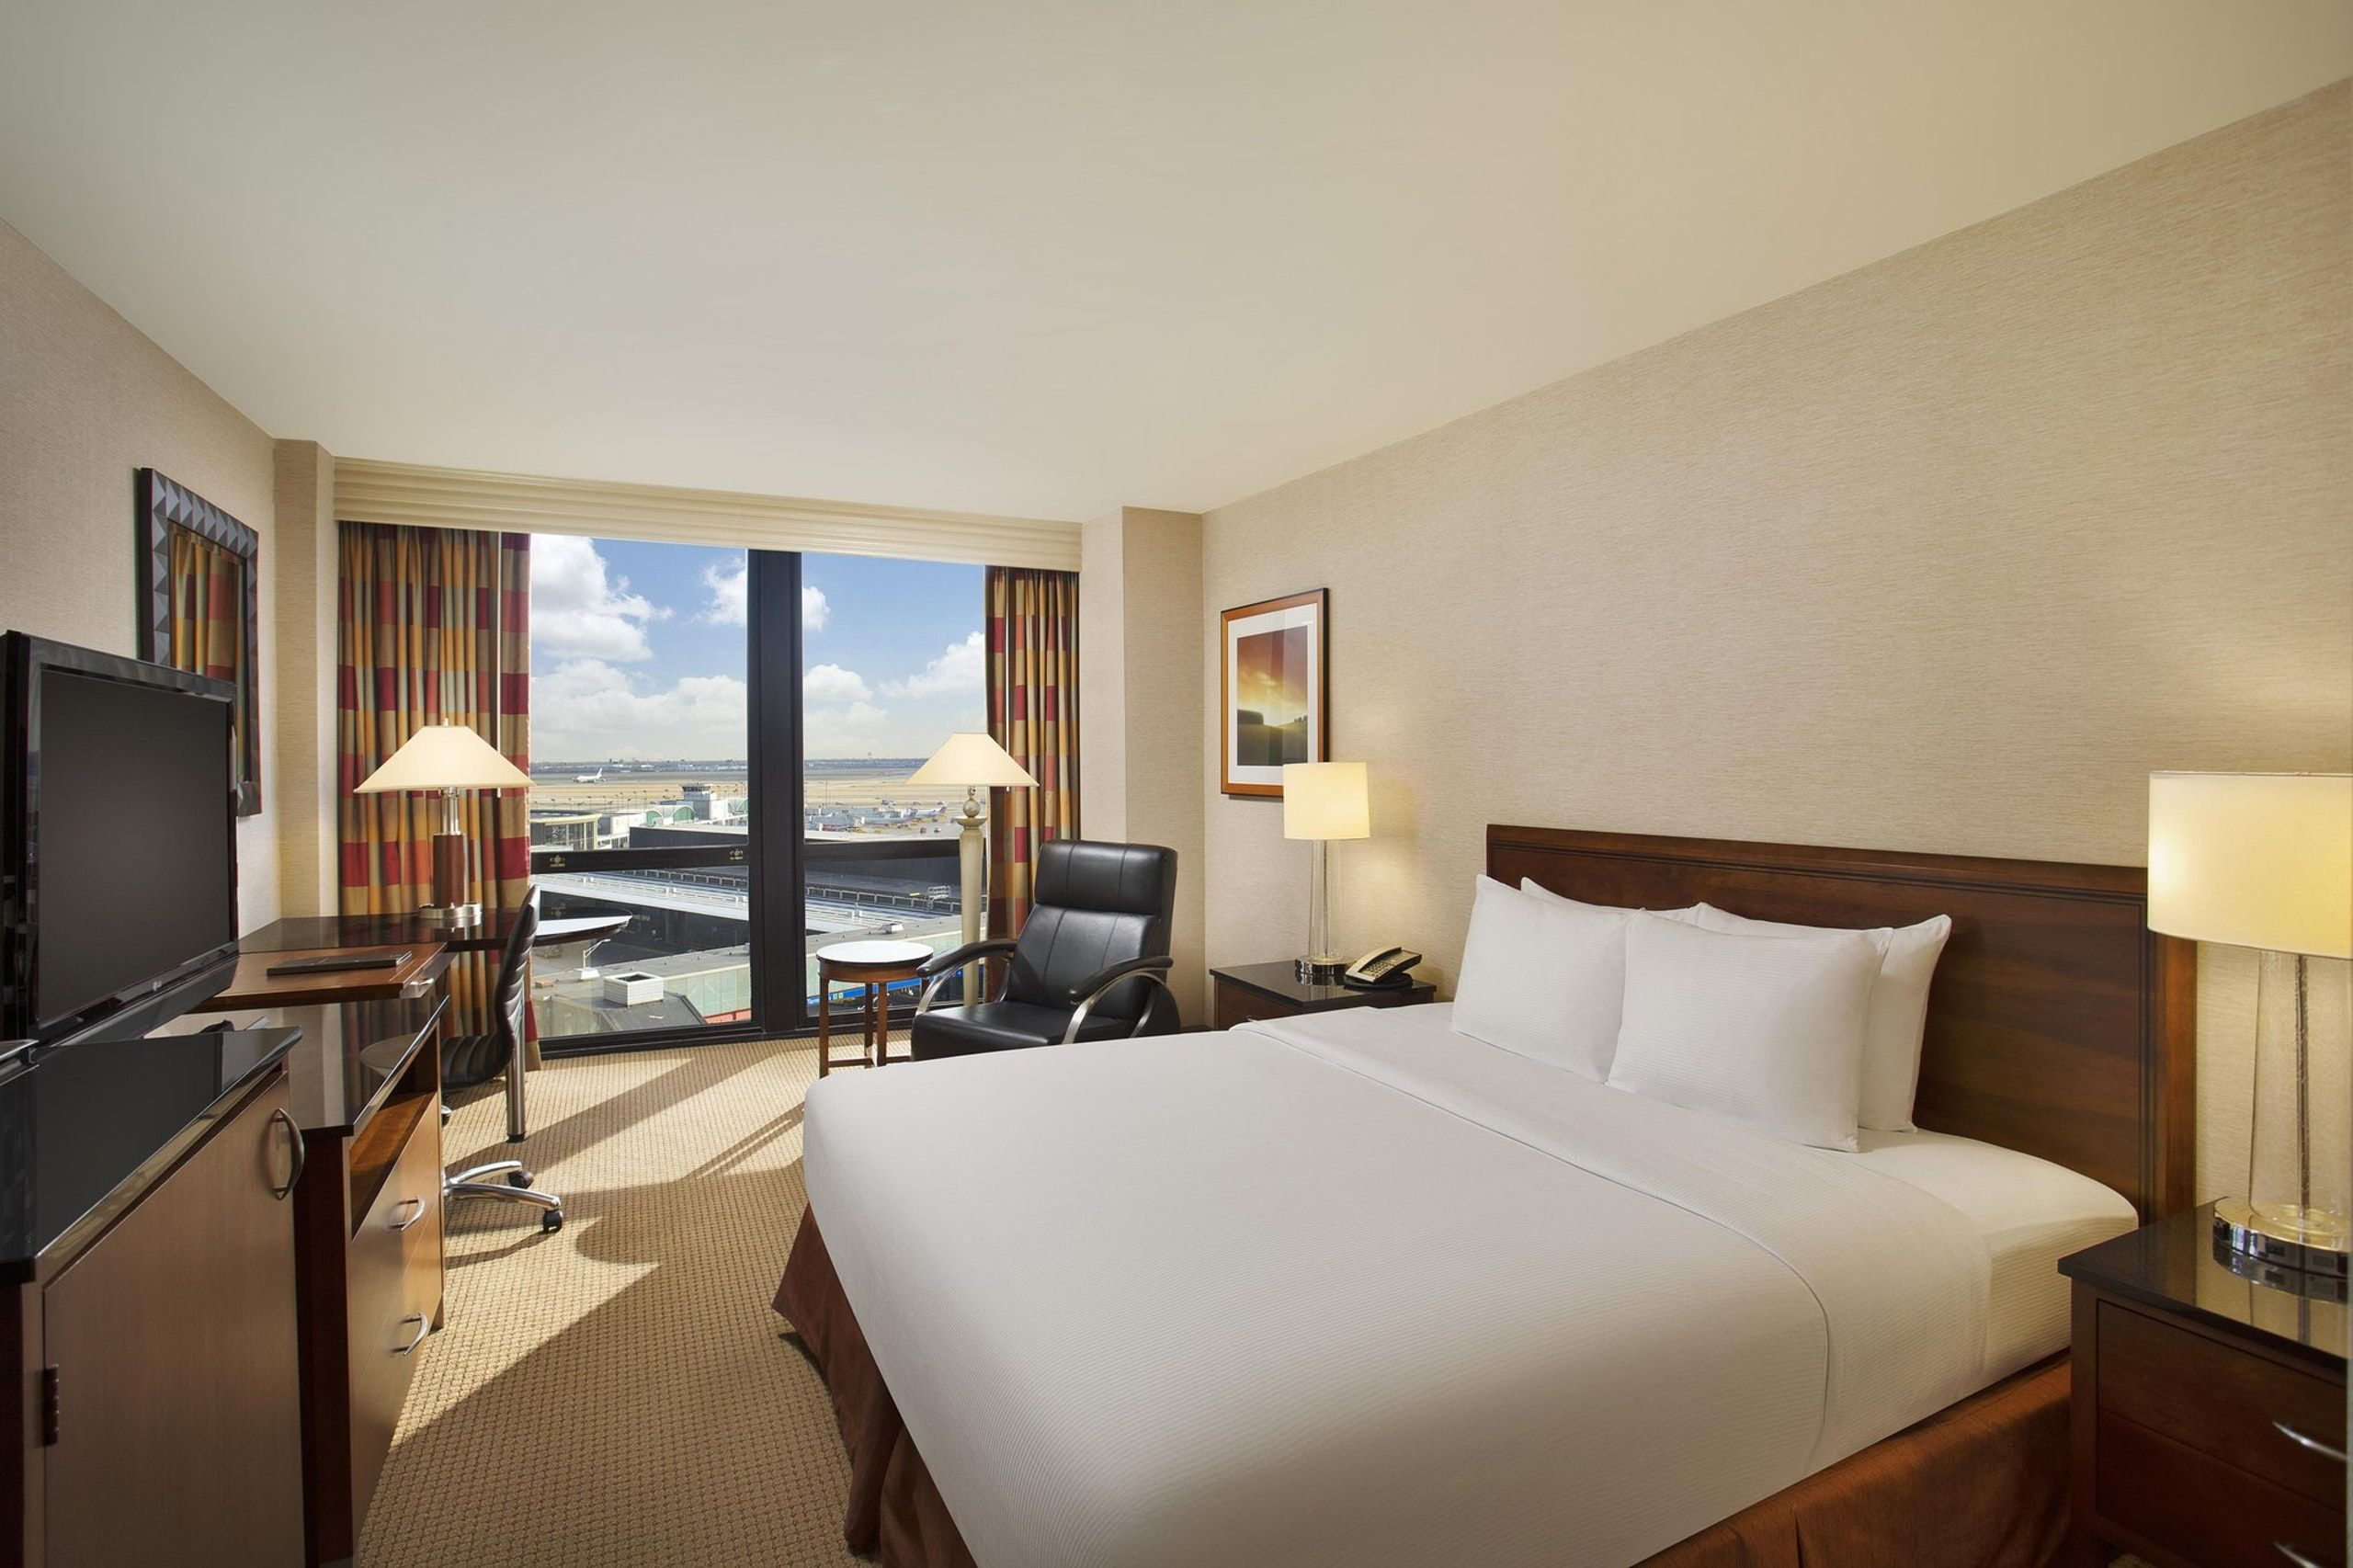 Suites At Hilton Chicago O Hare Airport Suiteness More